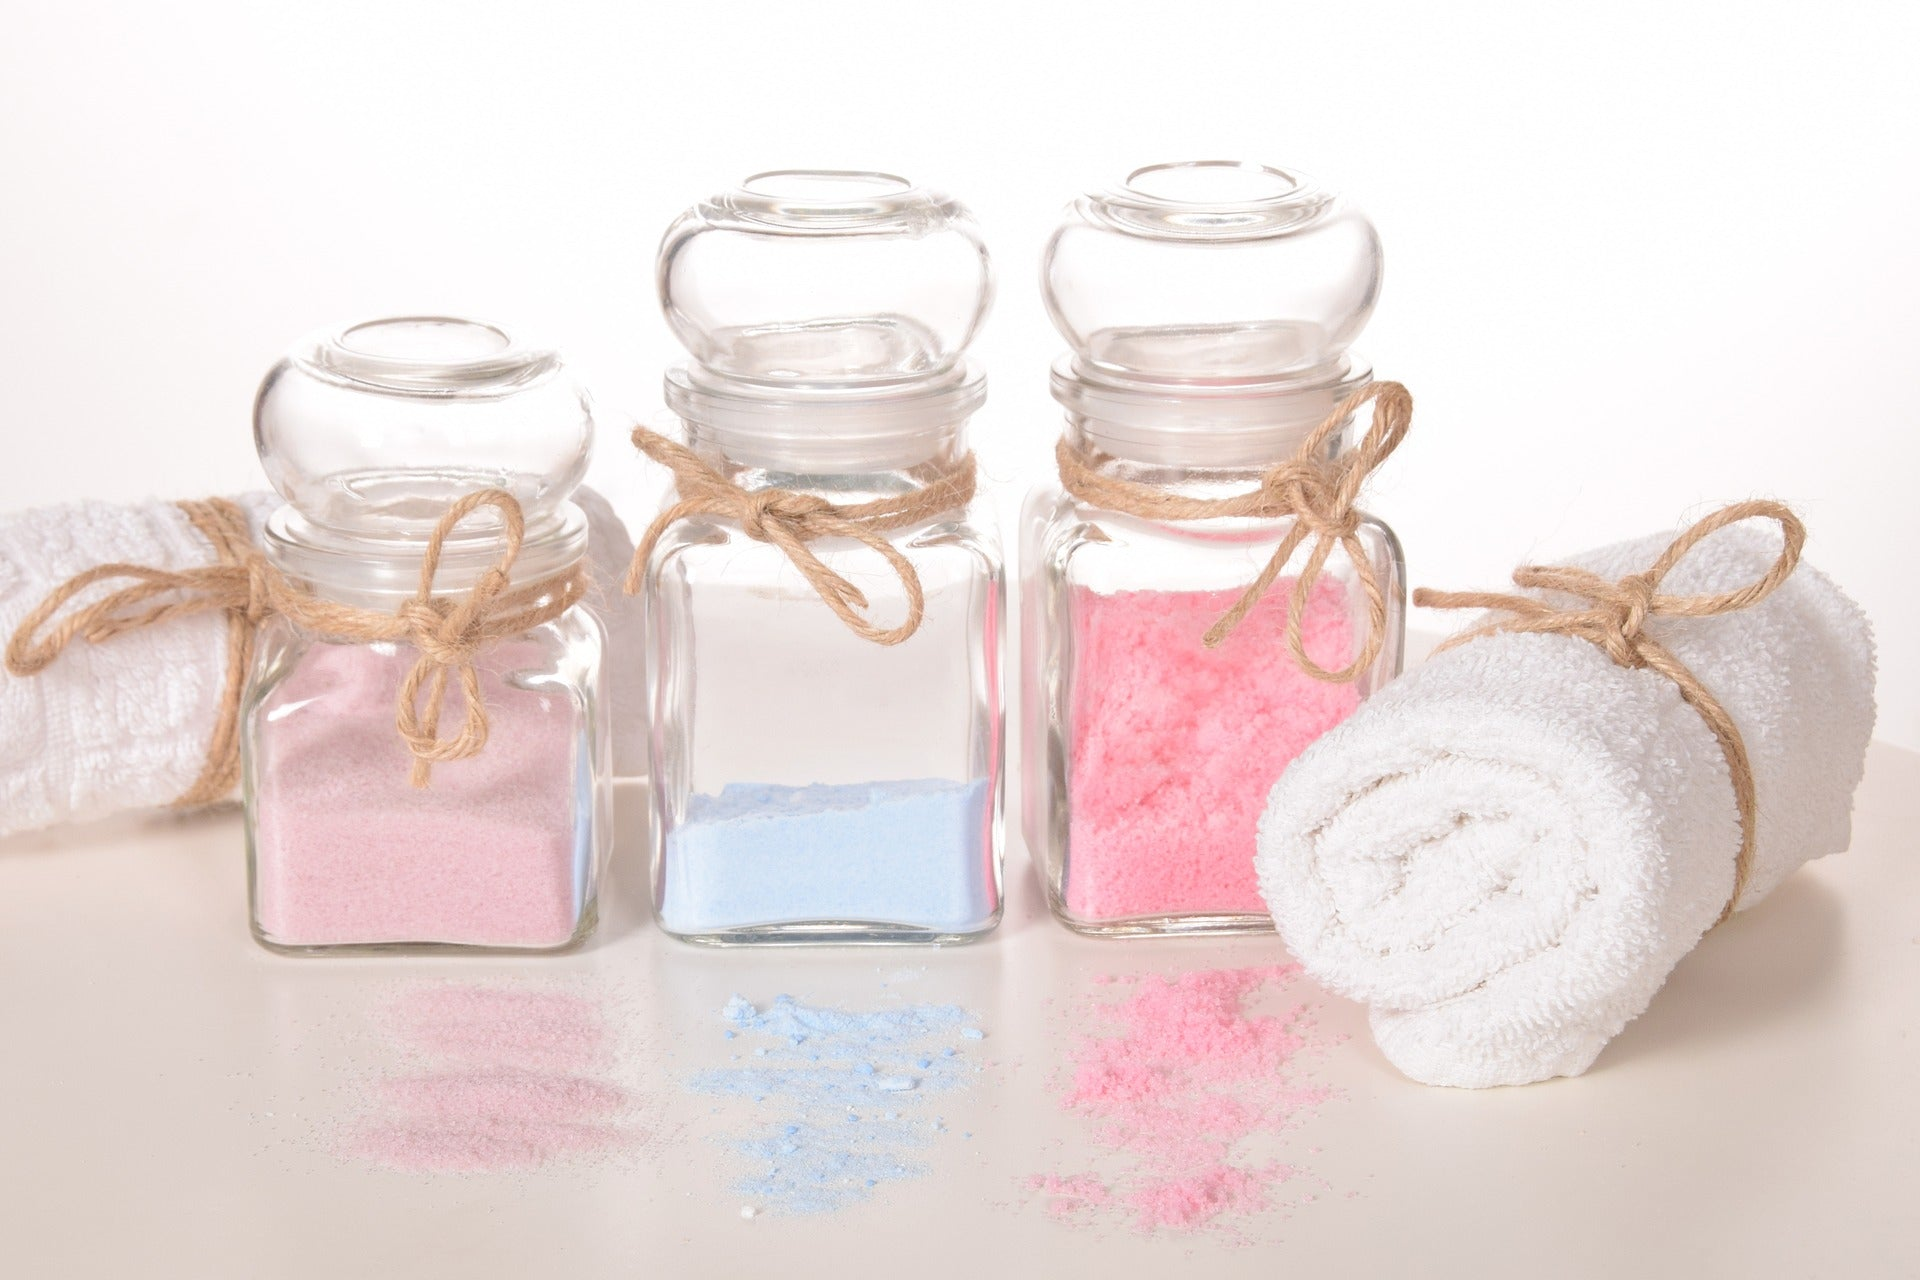 Aroma bath salts for a self-care routine